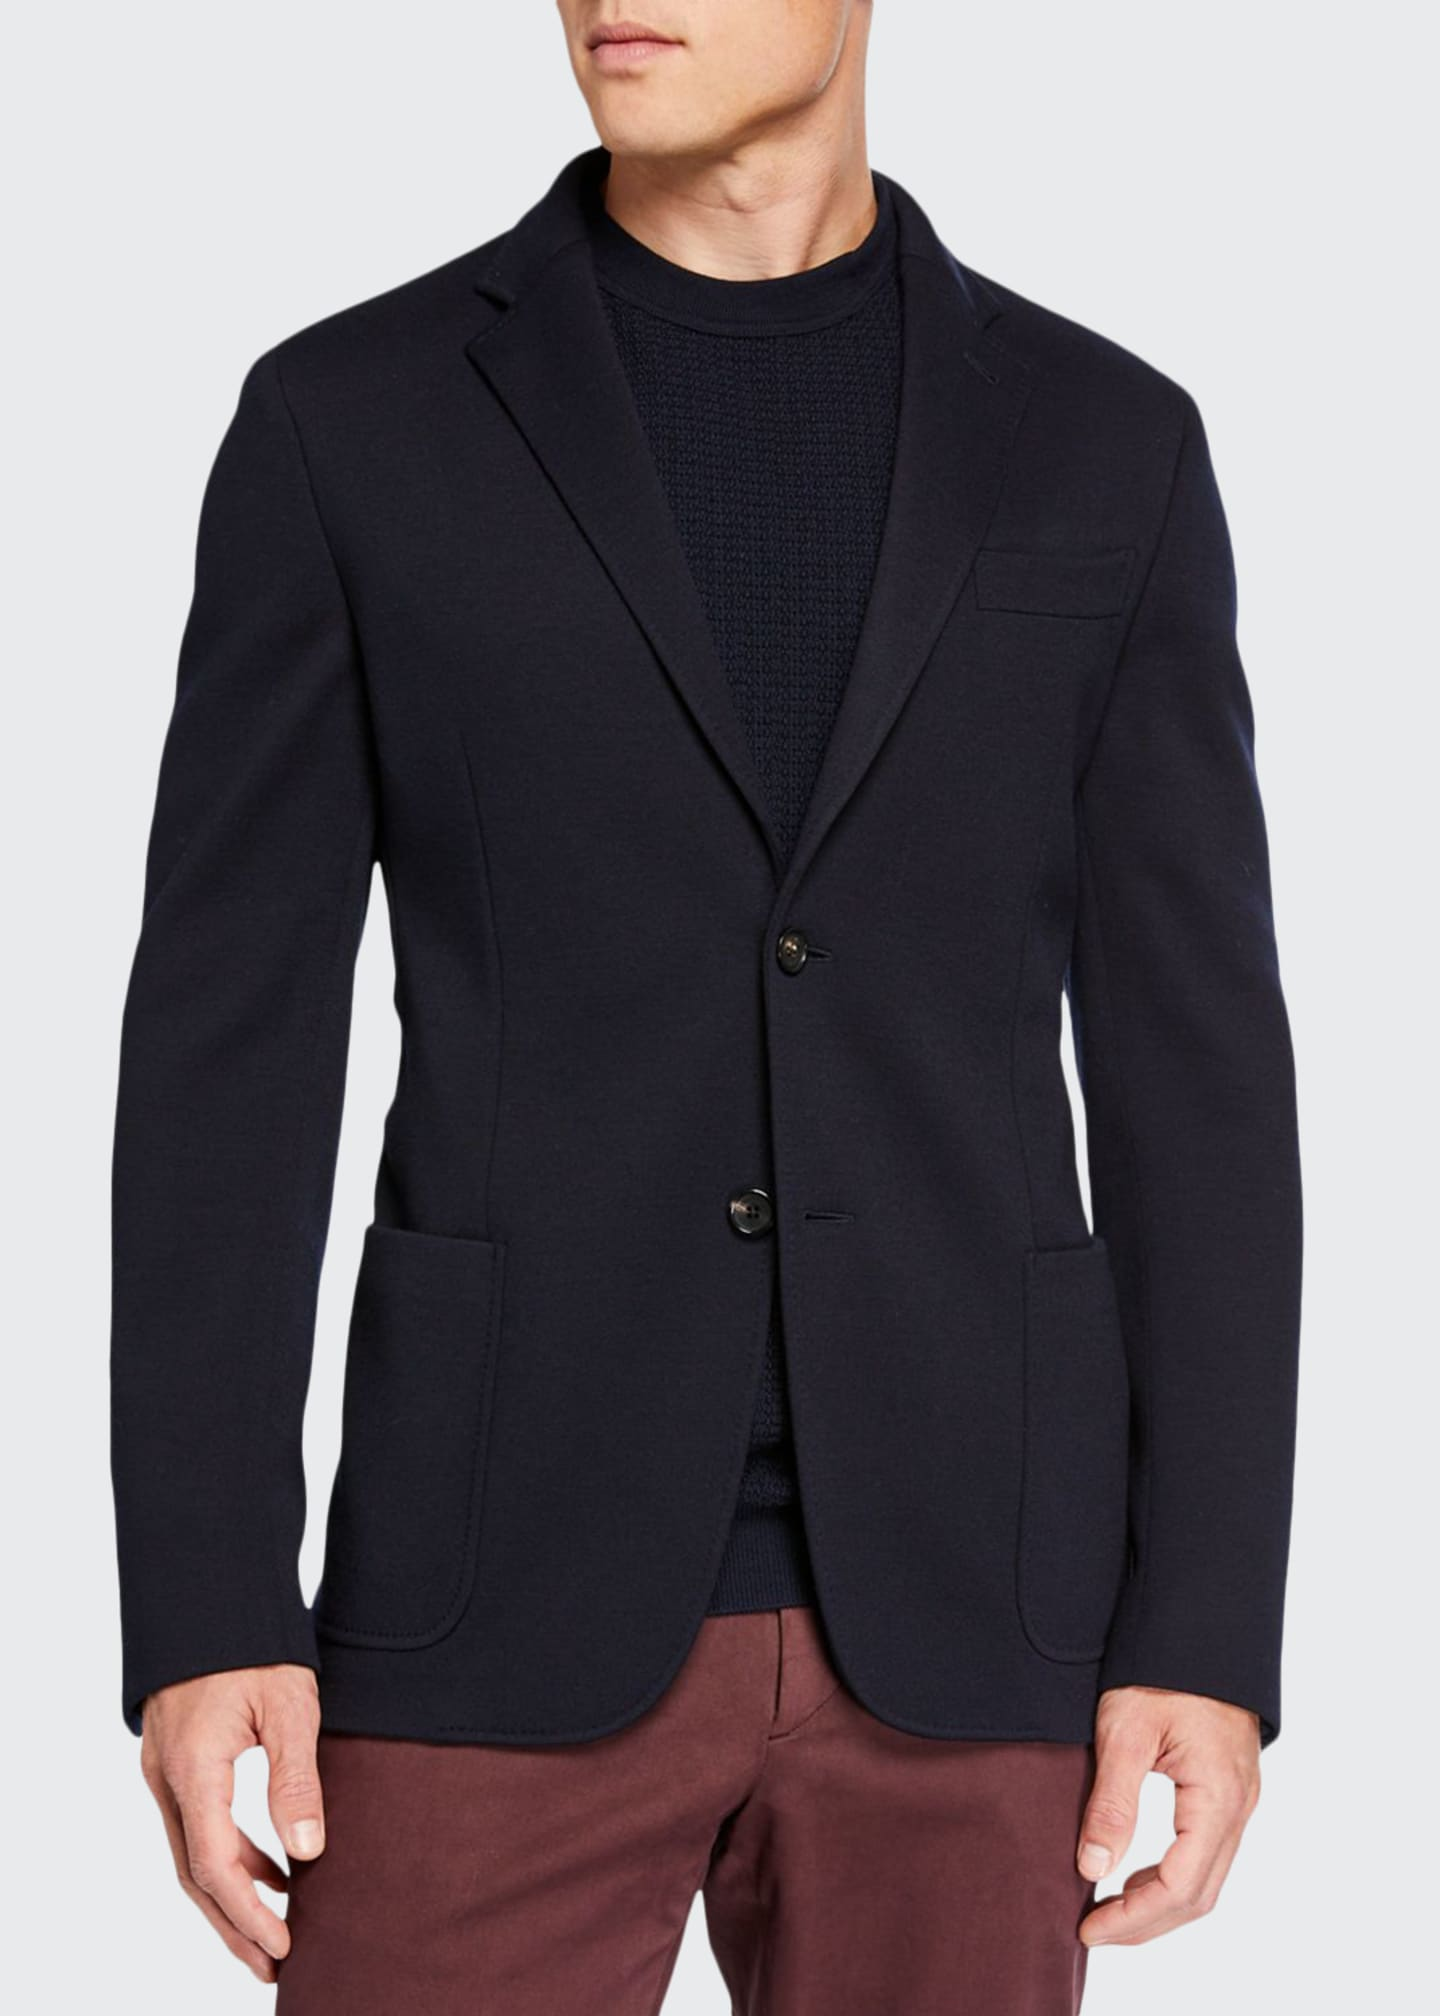 Ermenegildo Zegna Men's Regular-Fit Jersey Two-Button Jacket